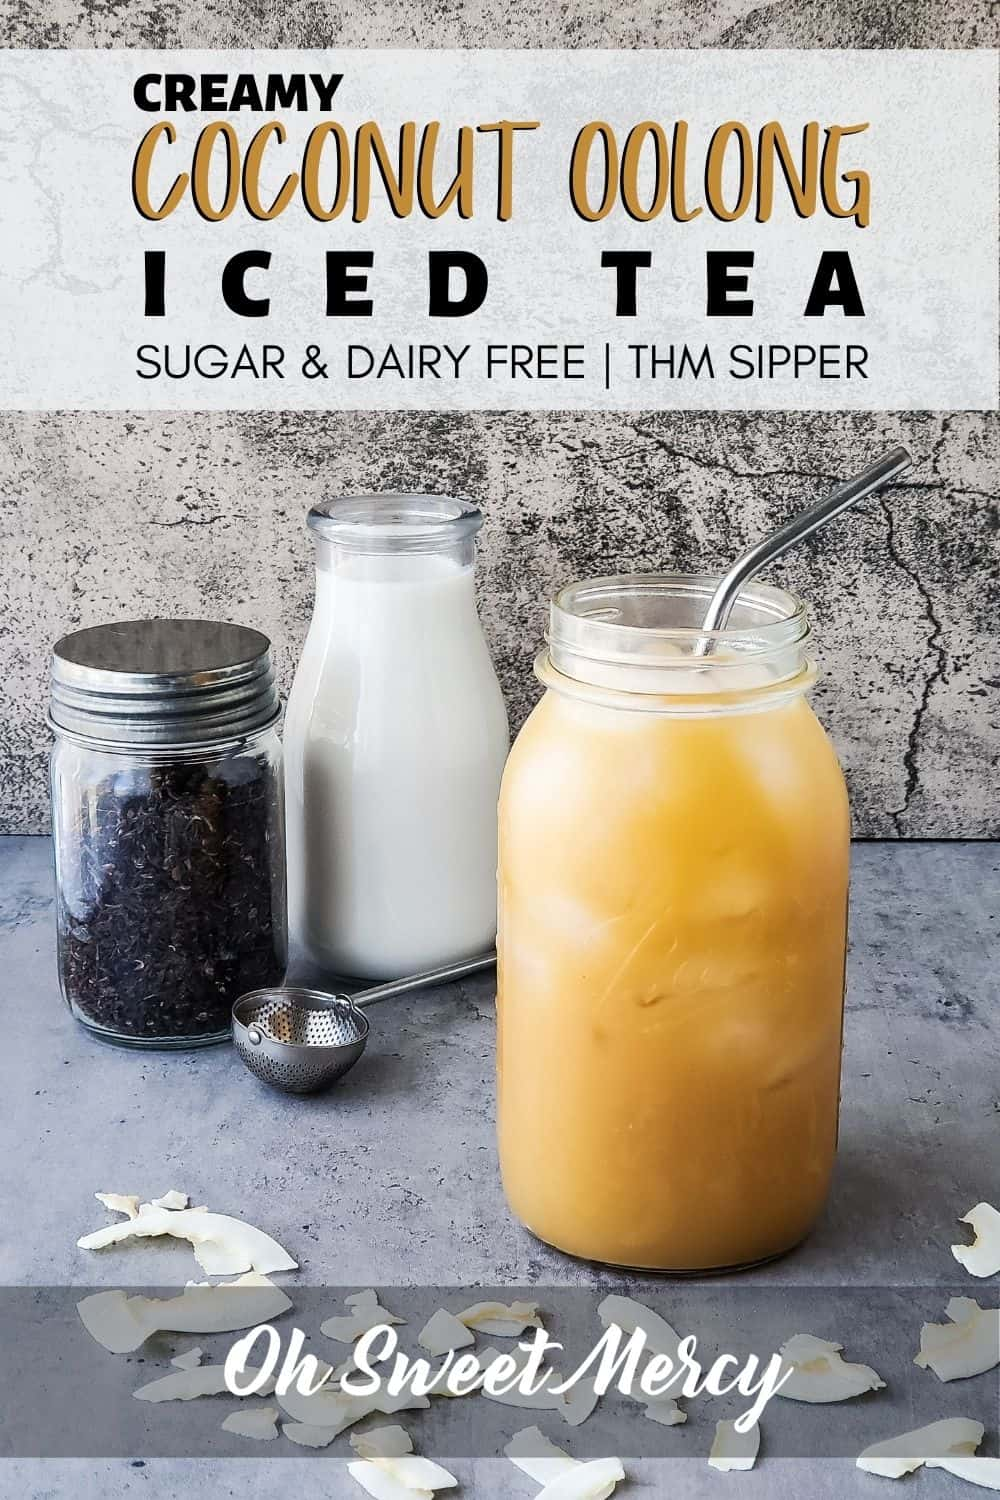 Change up your summer sippers with my Creamy Coconut Oolong Iced Tea! Fat burning oolong gets tropical lift with a bit of coconut flavor. Dairy and sugar free, too. #thmsippers #thm #sugarfree #dairyfree #lowcarb #lowfat @ohsweetmercy